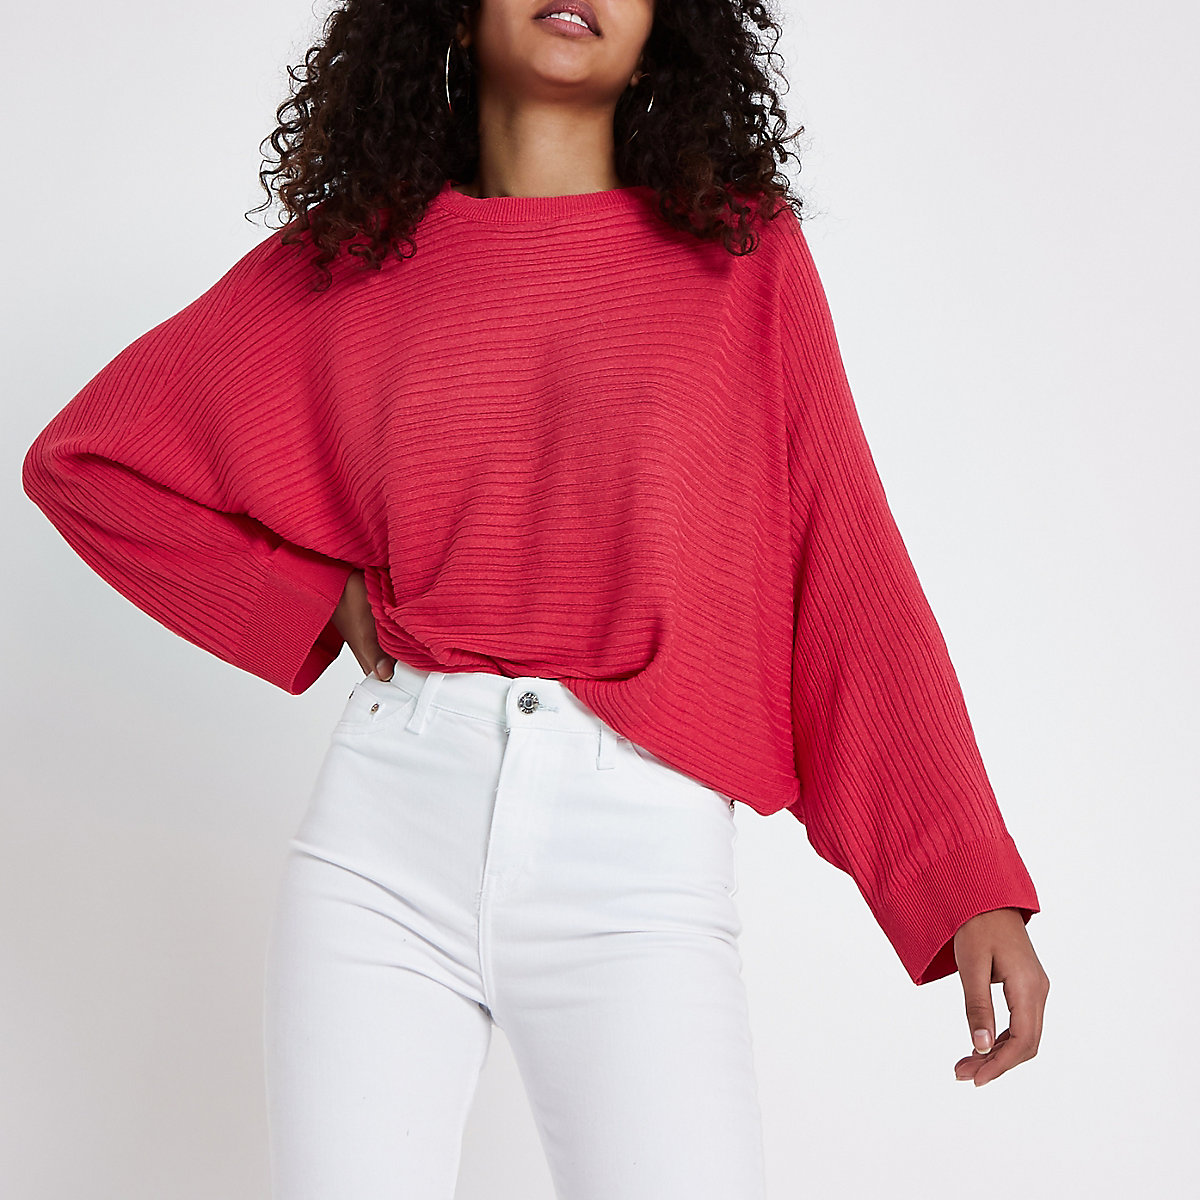 Pink ribbed long sleeve knitted sweater